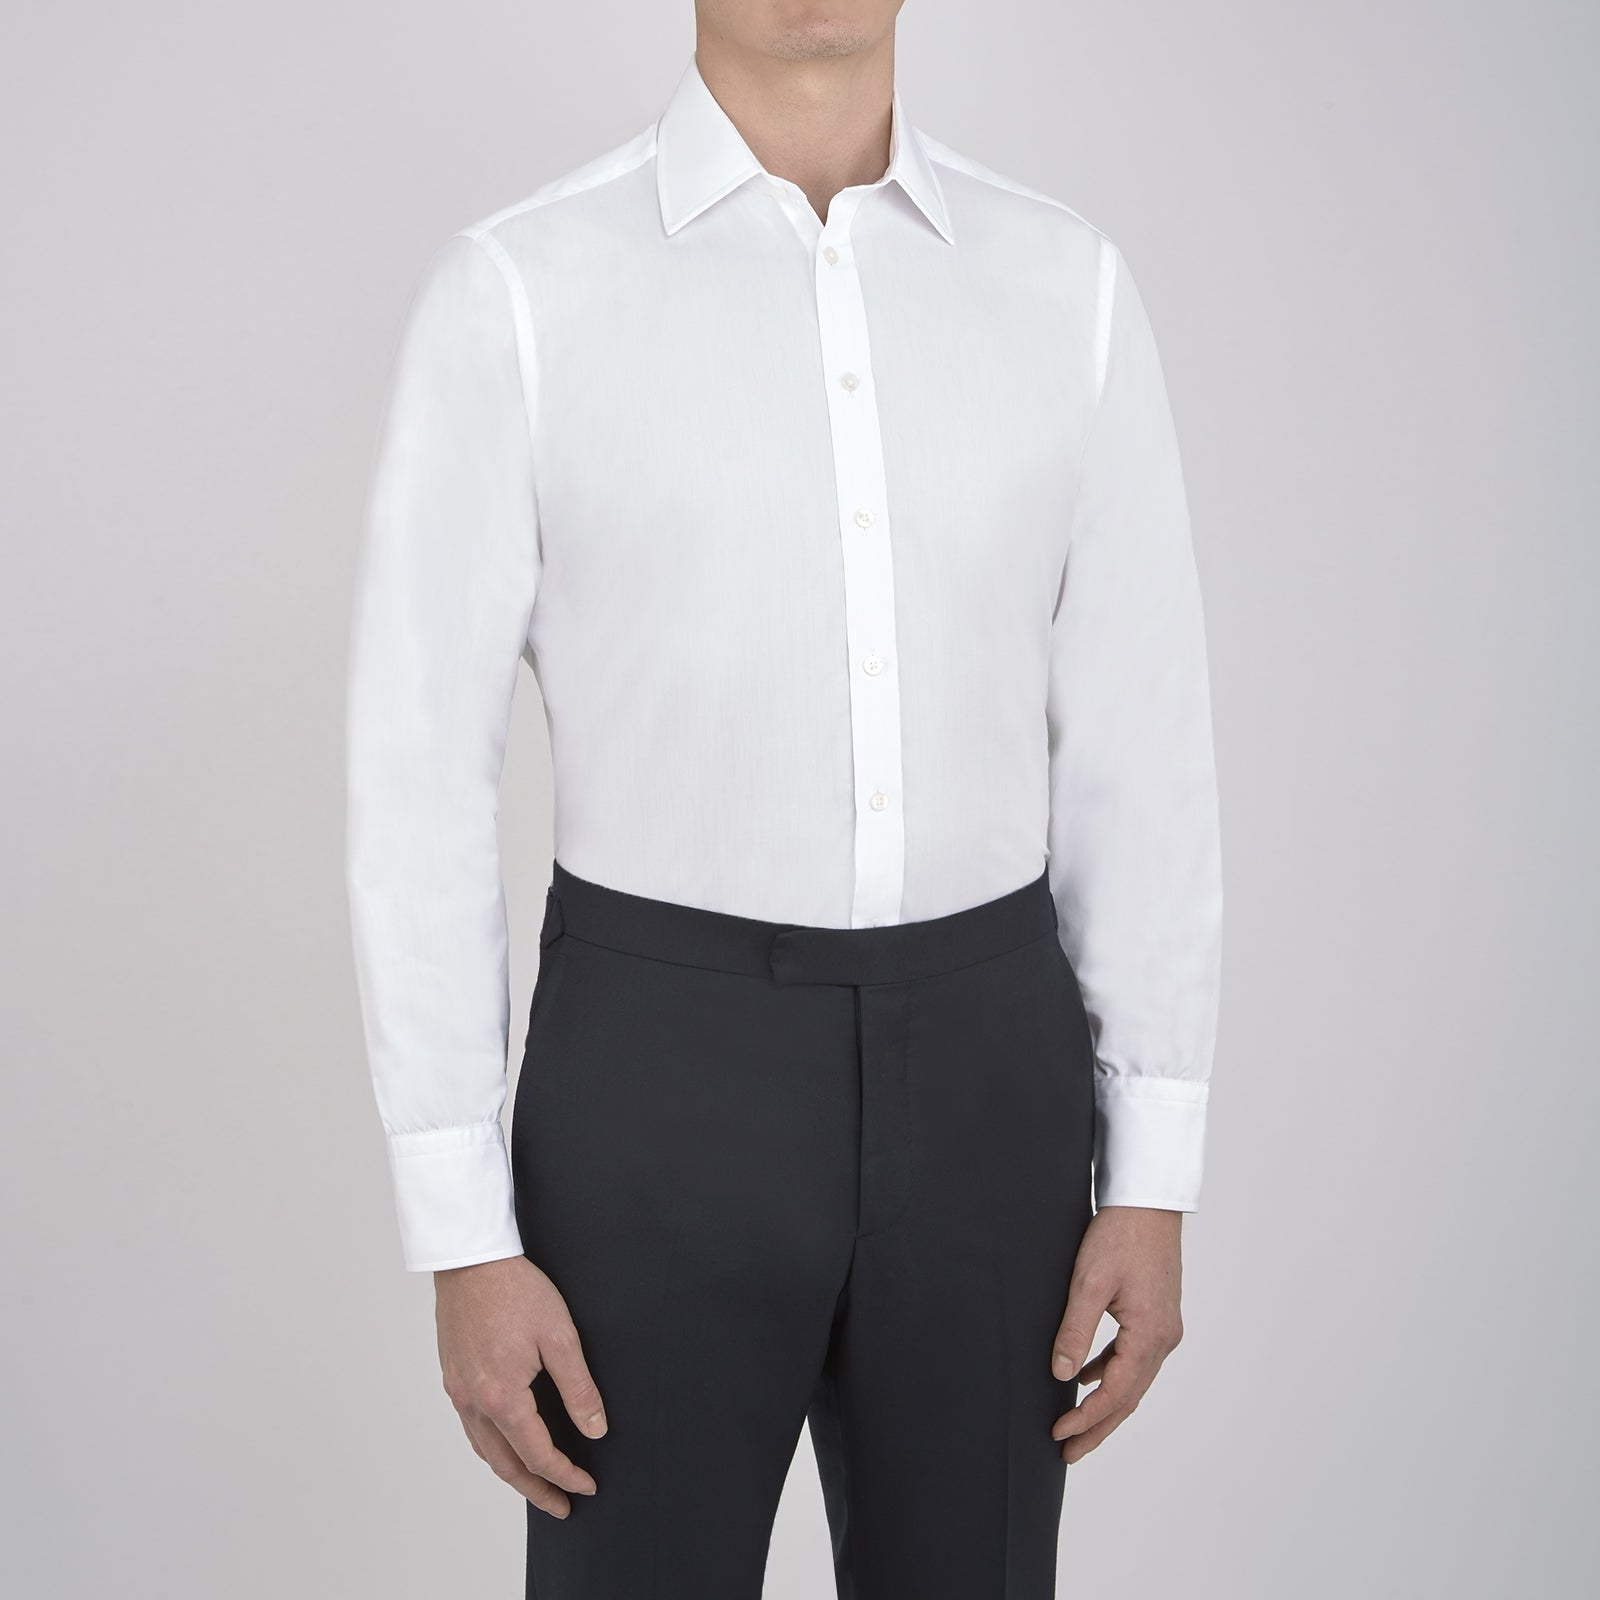 Plain White Cotton Shirt with T&A Collar and 3-Button Cuffs